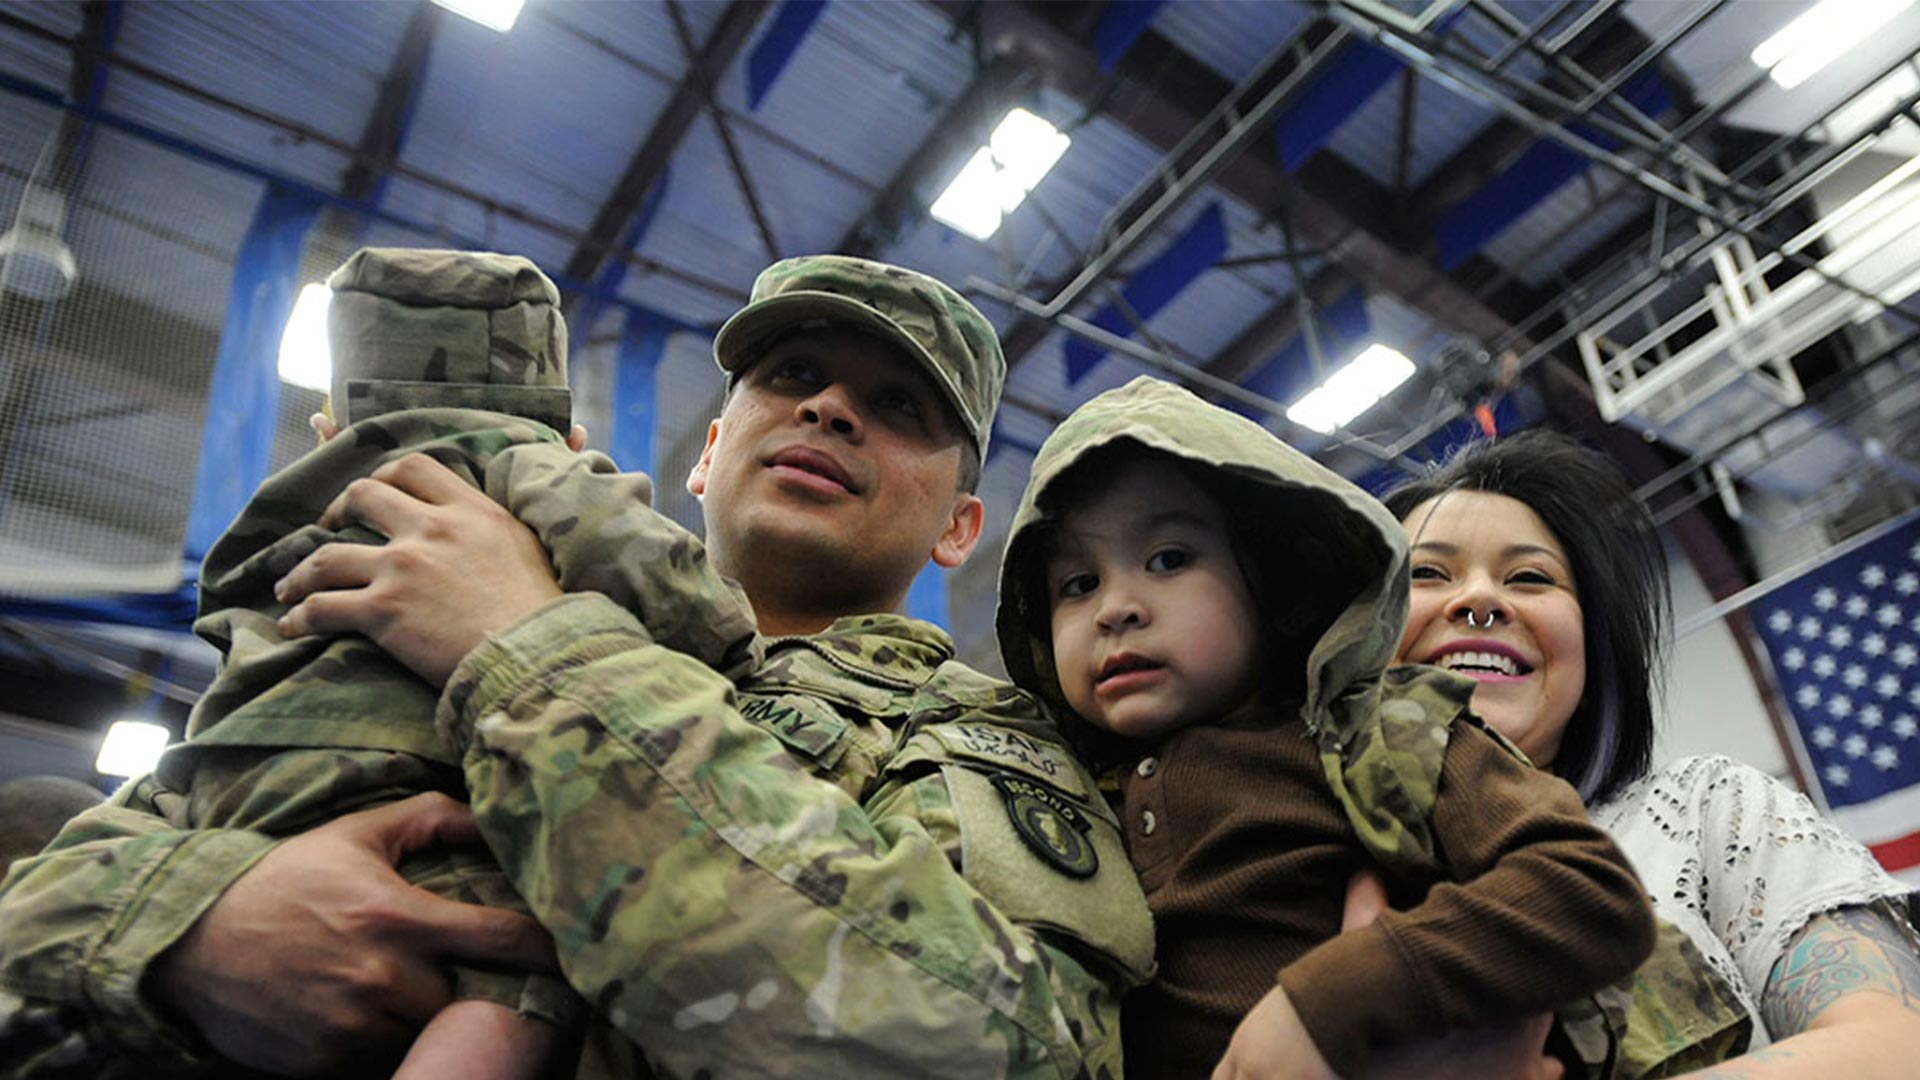 A smiling military family of four